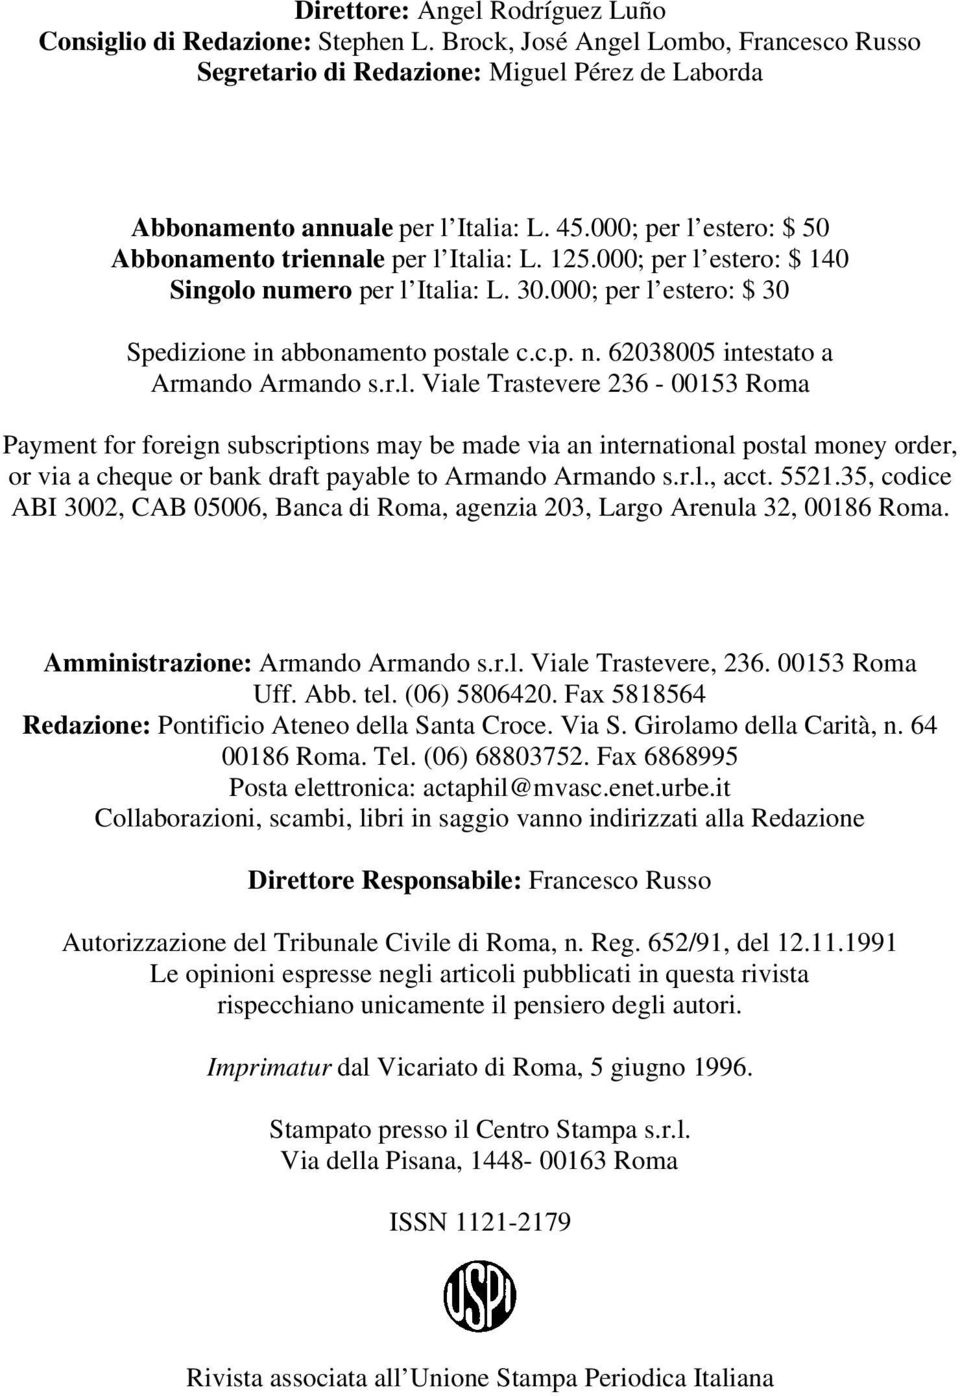 r.l. Viale Trastevere 236-00153 Roma Payment for foreign subscriptions may be made via an international postal money order, or via a cheque or bank draft payable to Armando Armando s.r.l., acct. 5521.